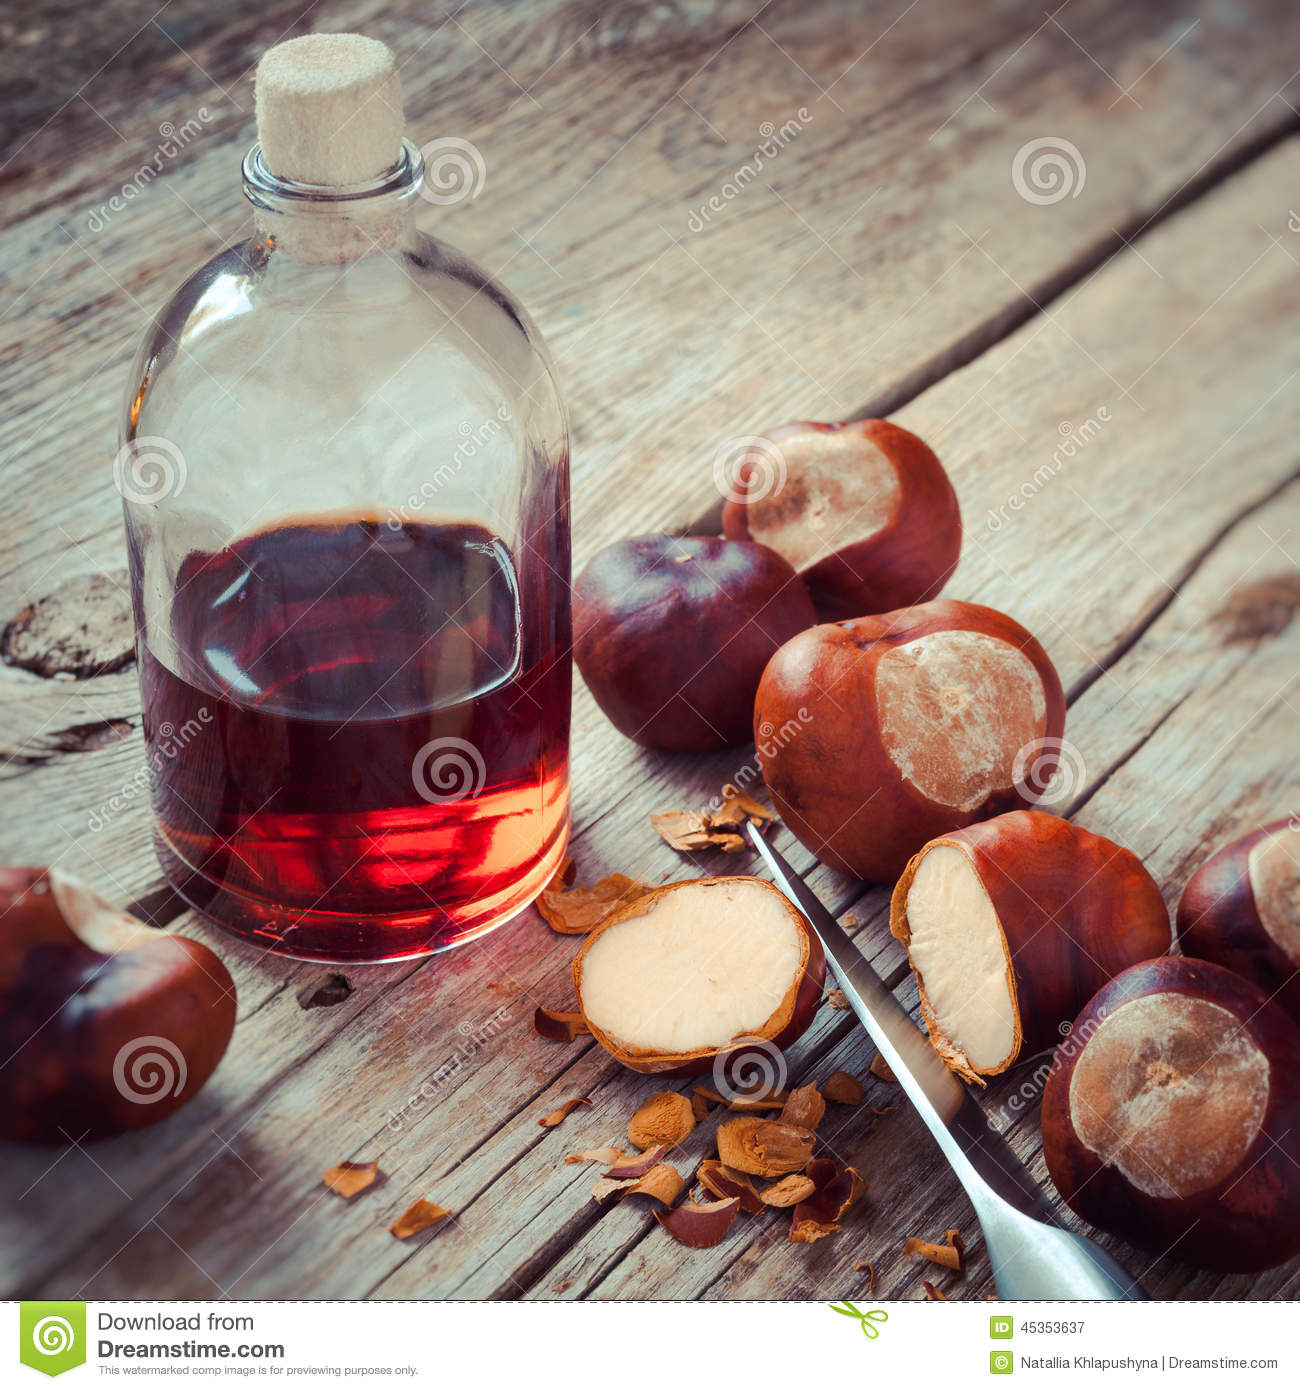 Chestnuts, knife and bottle with tincture on wooden table, herba